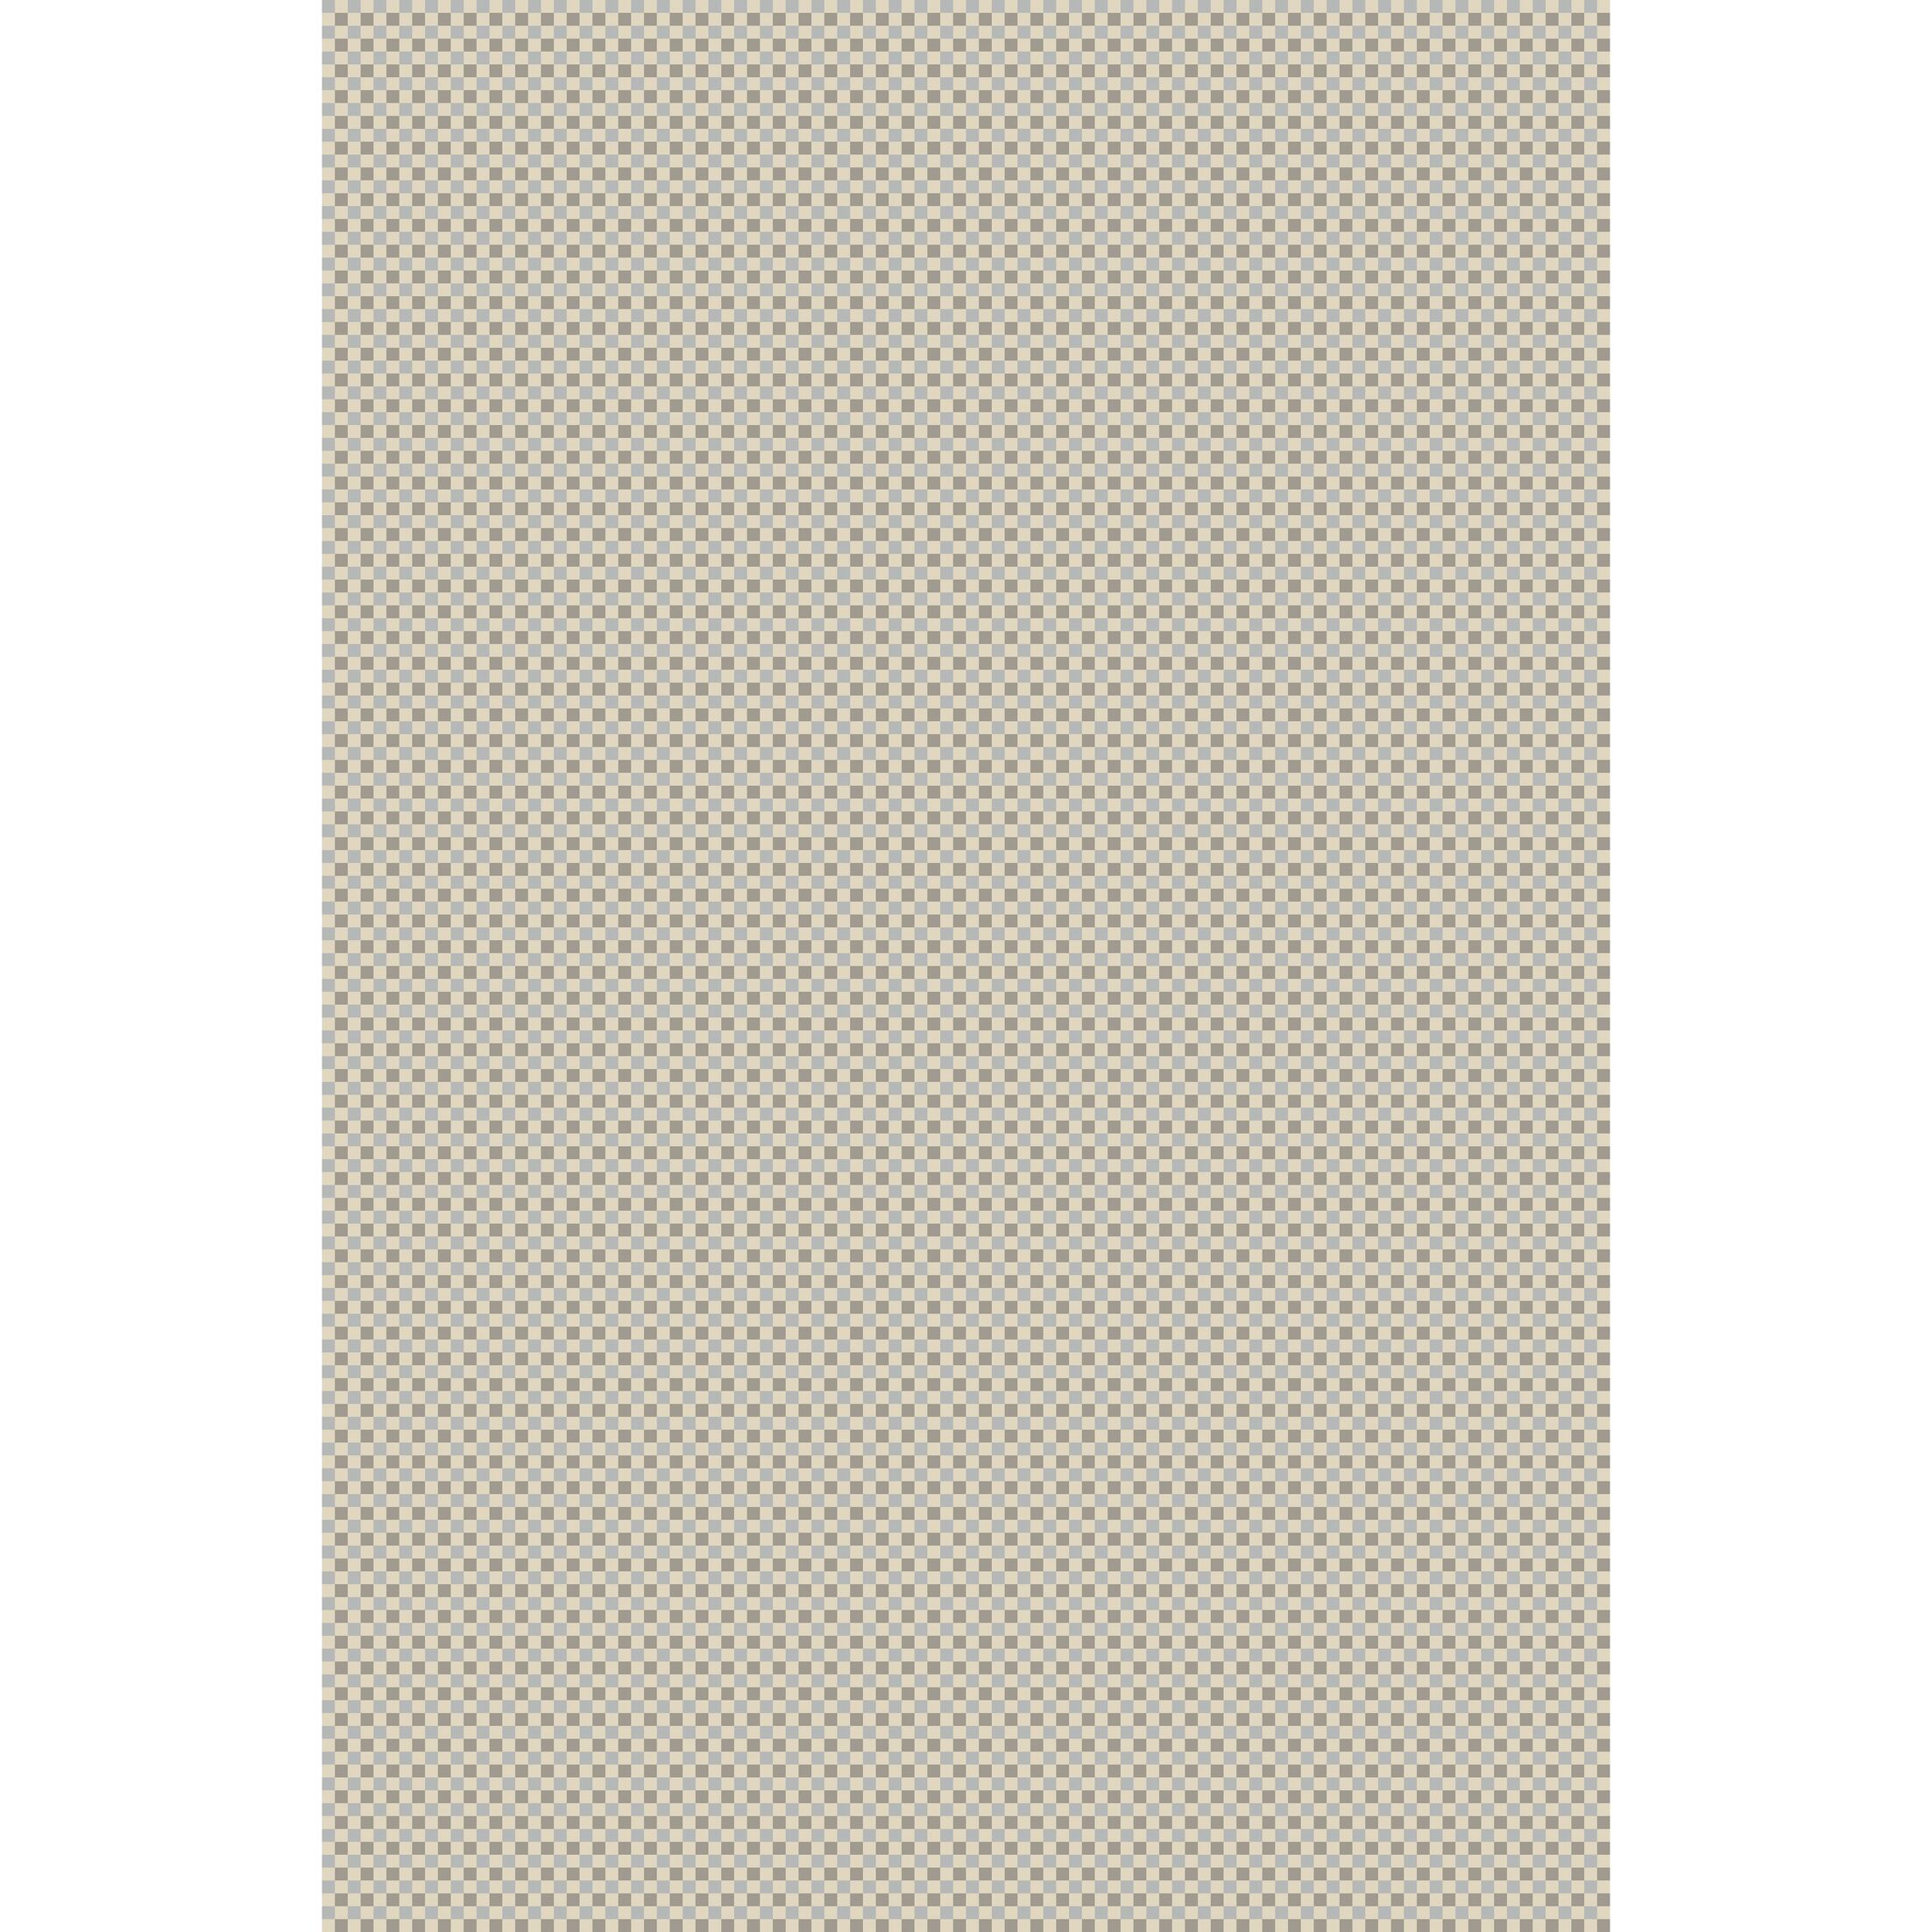 Laflin Hand-Woven Light Gray Area Rug Rug Size: Rectangle 6' x 9'